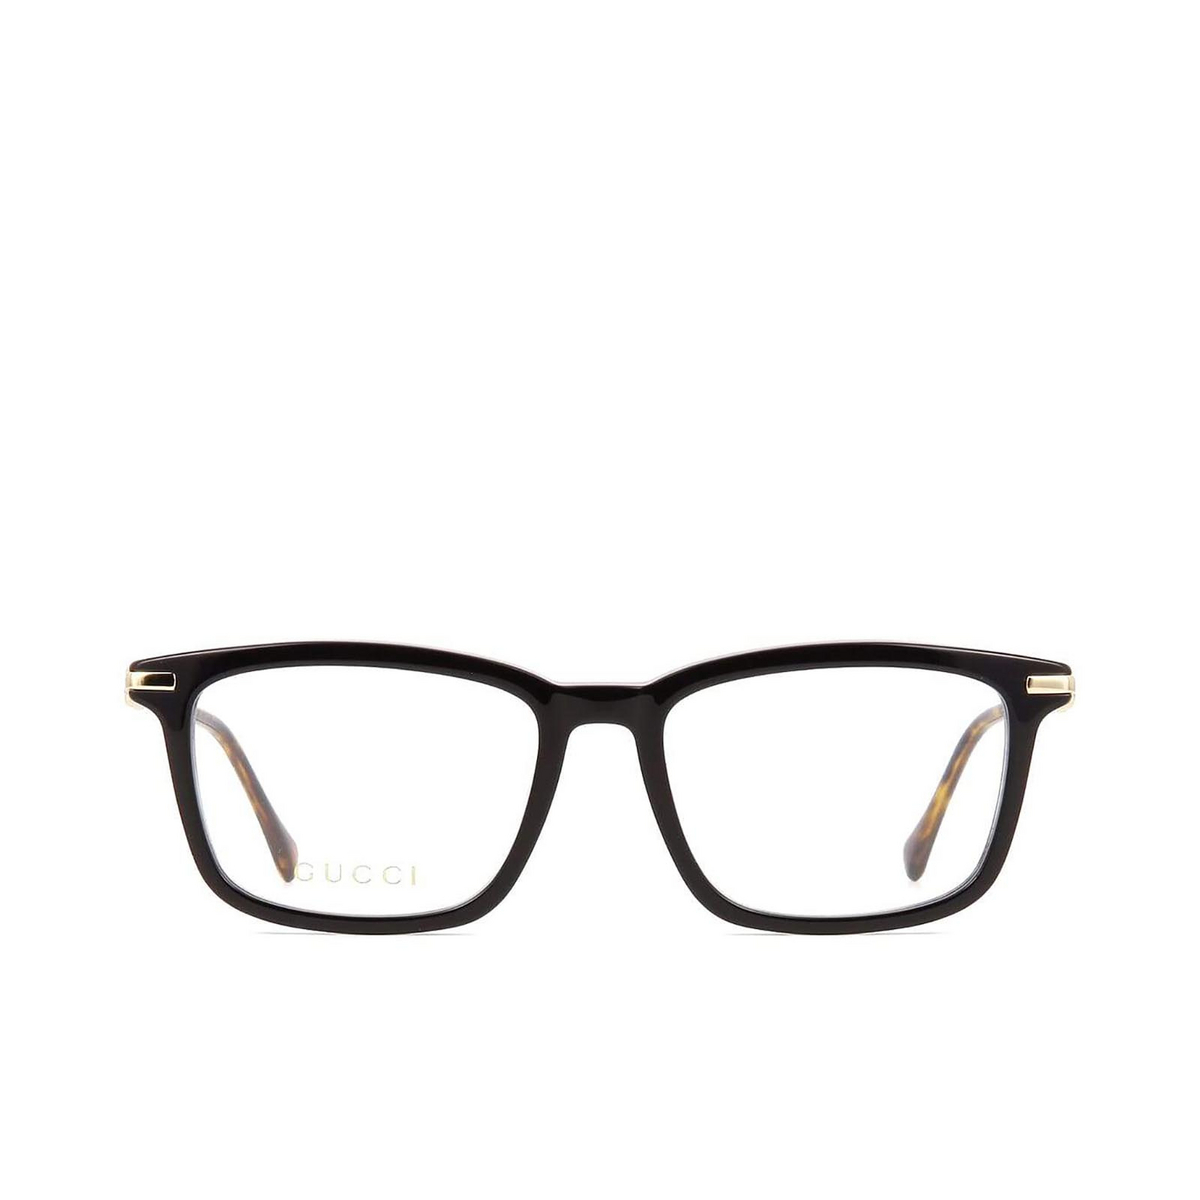 Gucci® Rectangle Eyeglasses: GG0920O color Black 004 - front view.